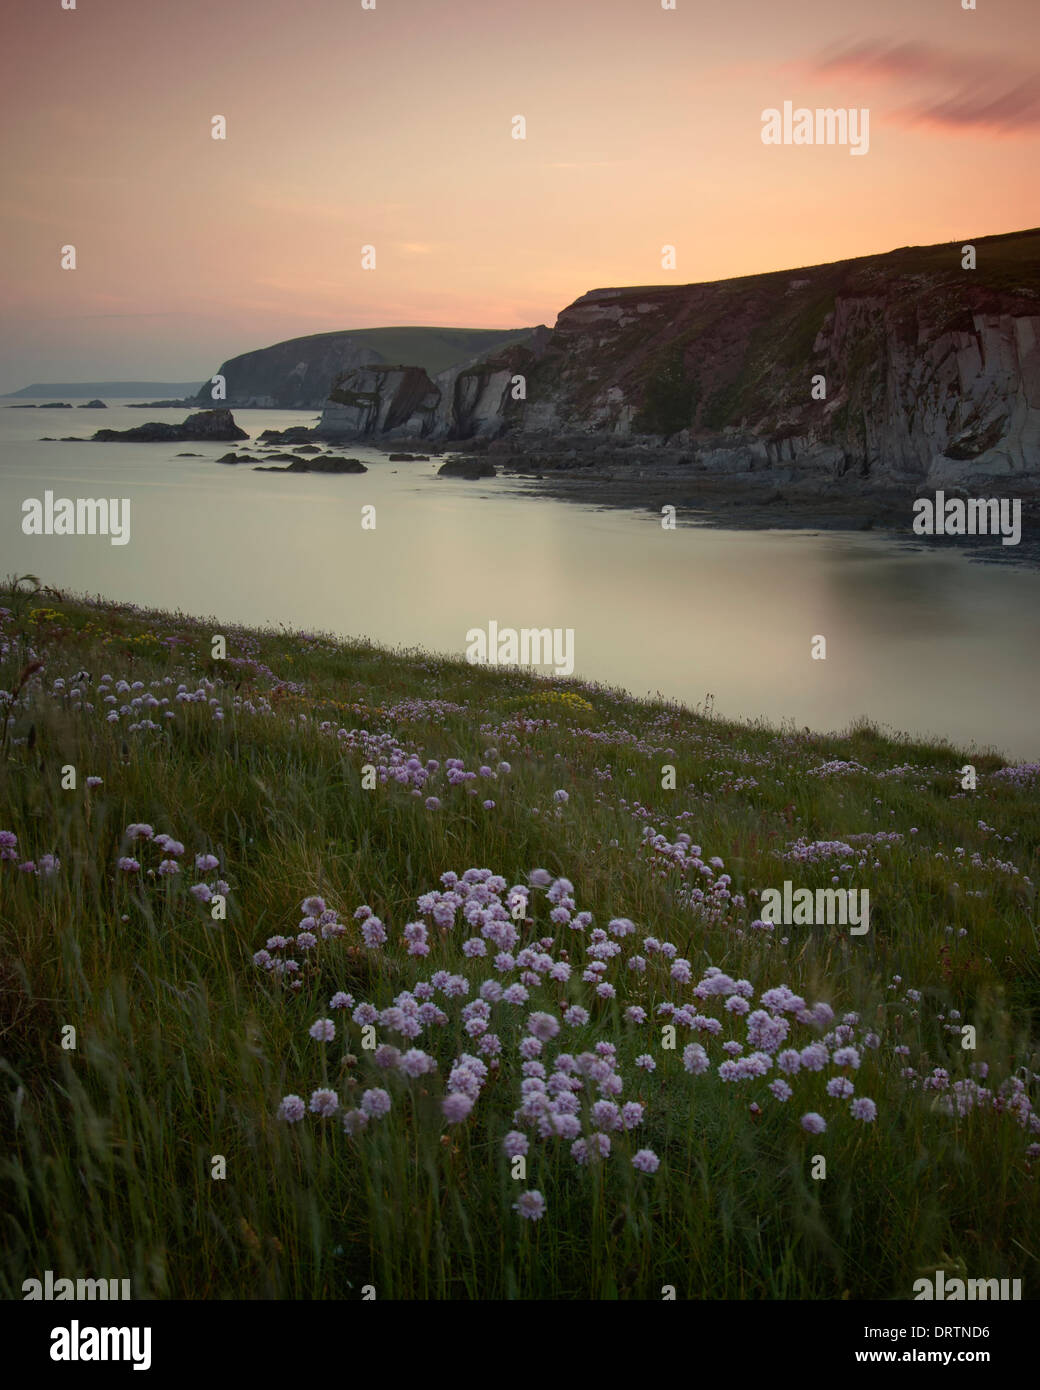 Thrift near Ayrmer Cove on the South West Coast Path at Kingsbridge overlooking Westcombe Beach, Ringmoor just after - Stock Image